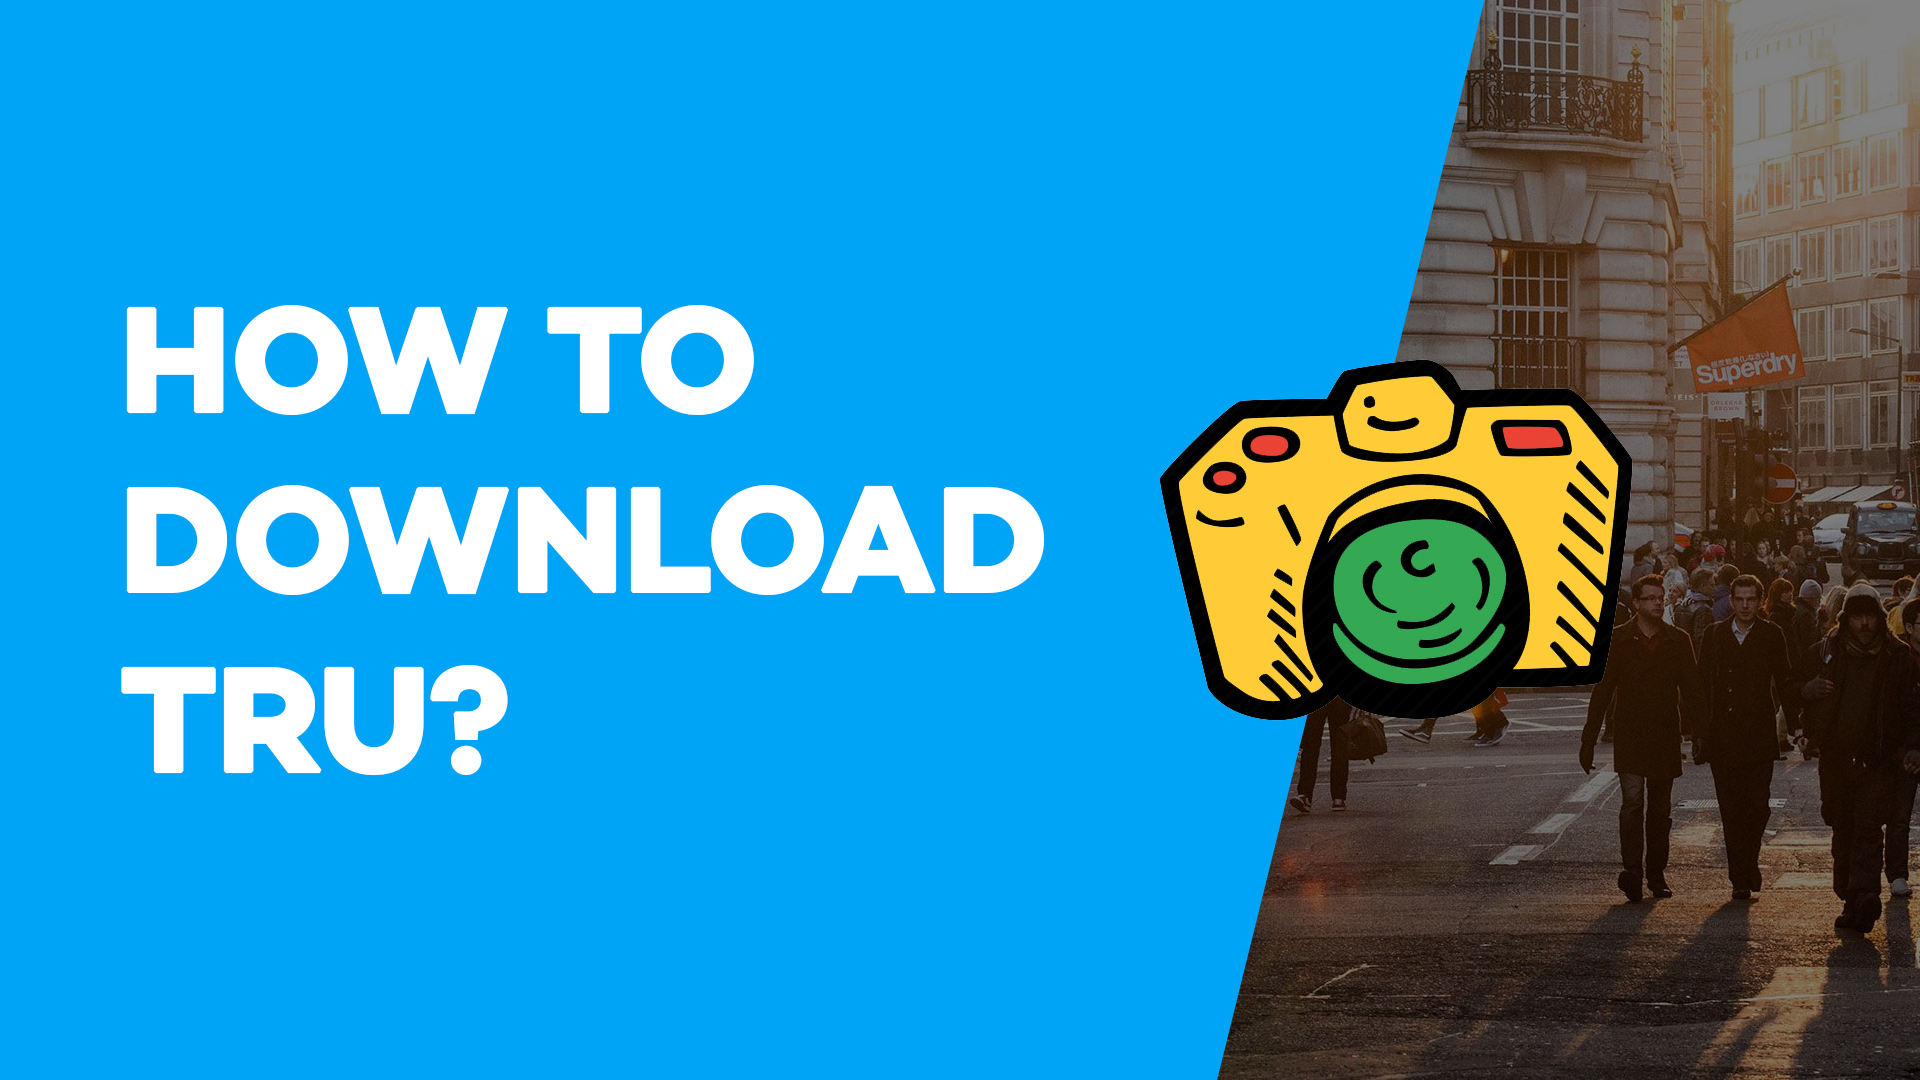 How to Download Tru?